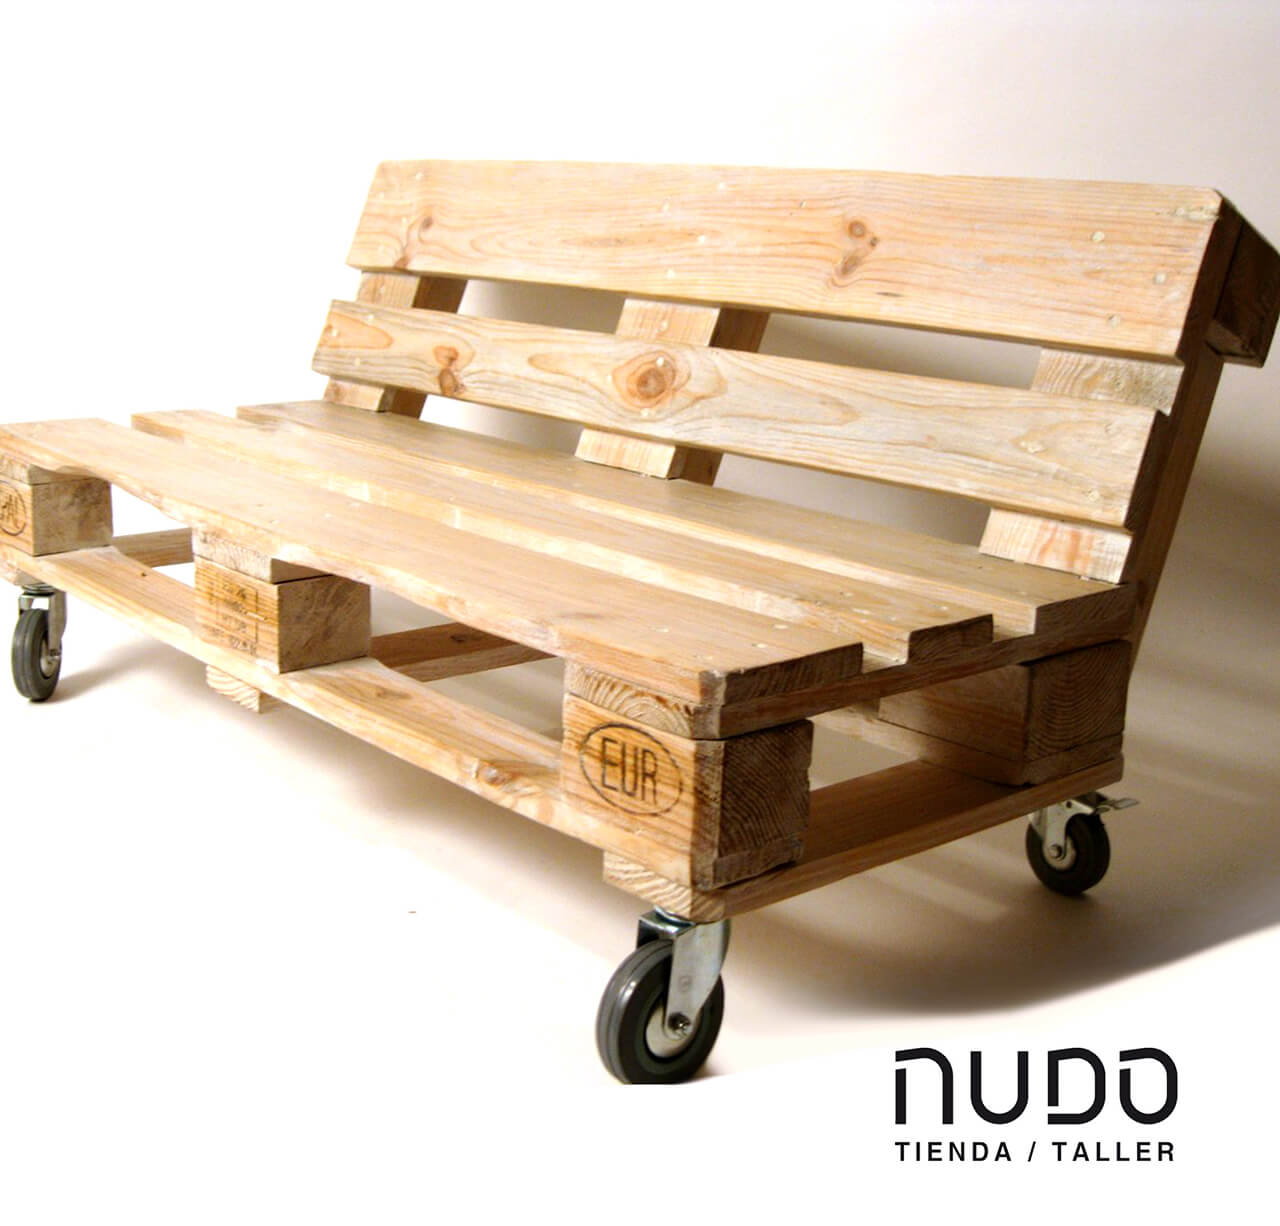 pallet furniture pinterest. Outdoor Pallet Furniture Ideas With Wheels For Moving Pinterest U